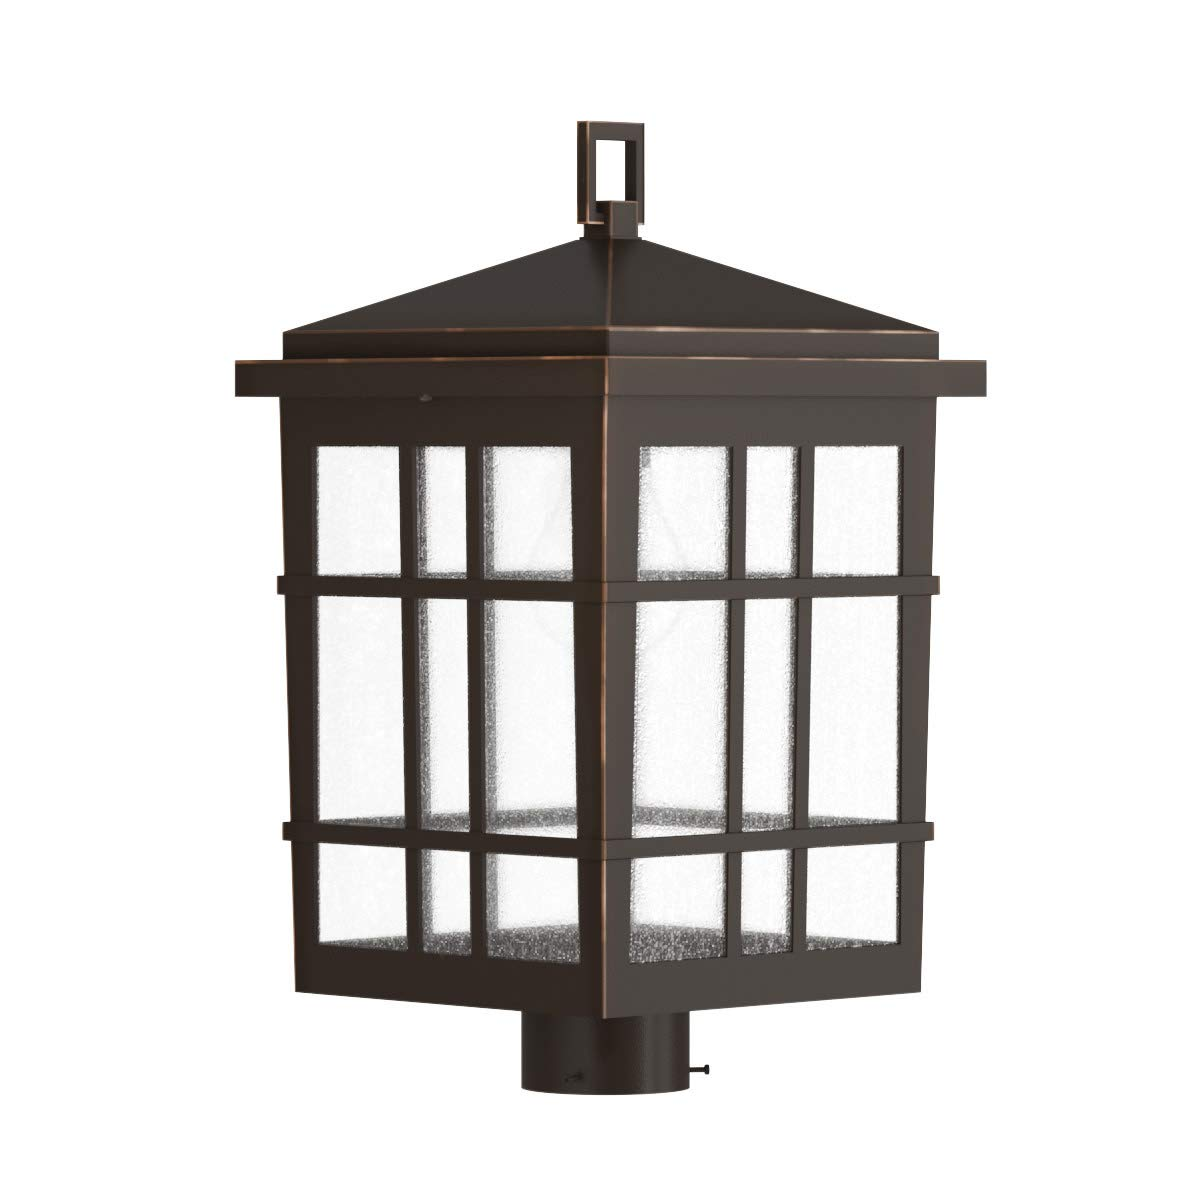 Park Harbor PHEL3303ORB Ambler Single Light 18-3/16'' High Outdoor Single Head Post Light with Seedy Glass Shade by Park Harbor (Image #1)